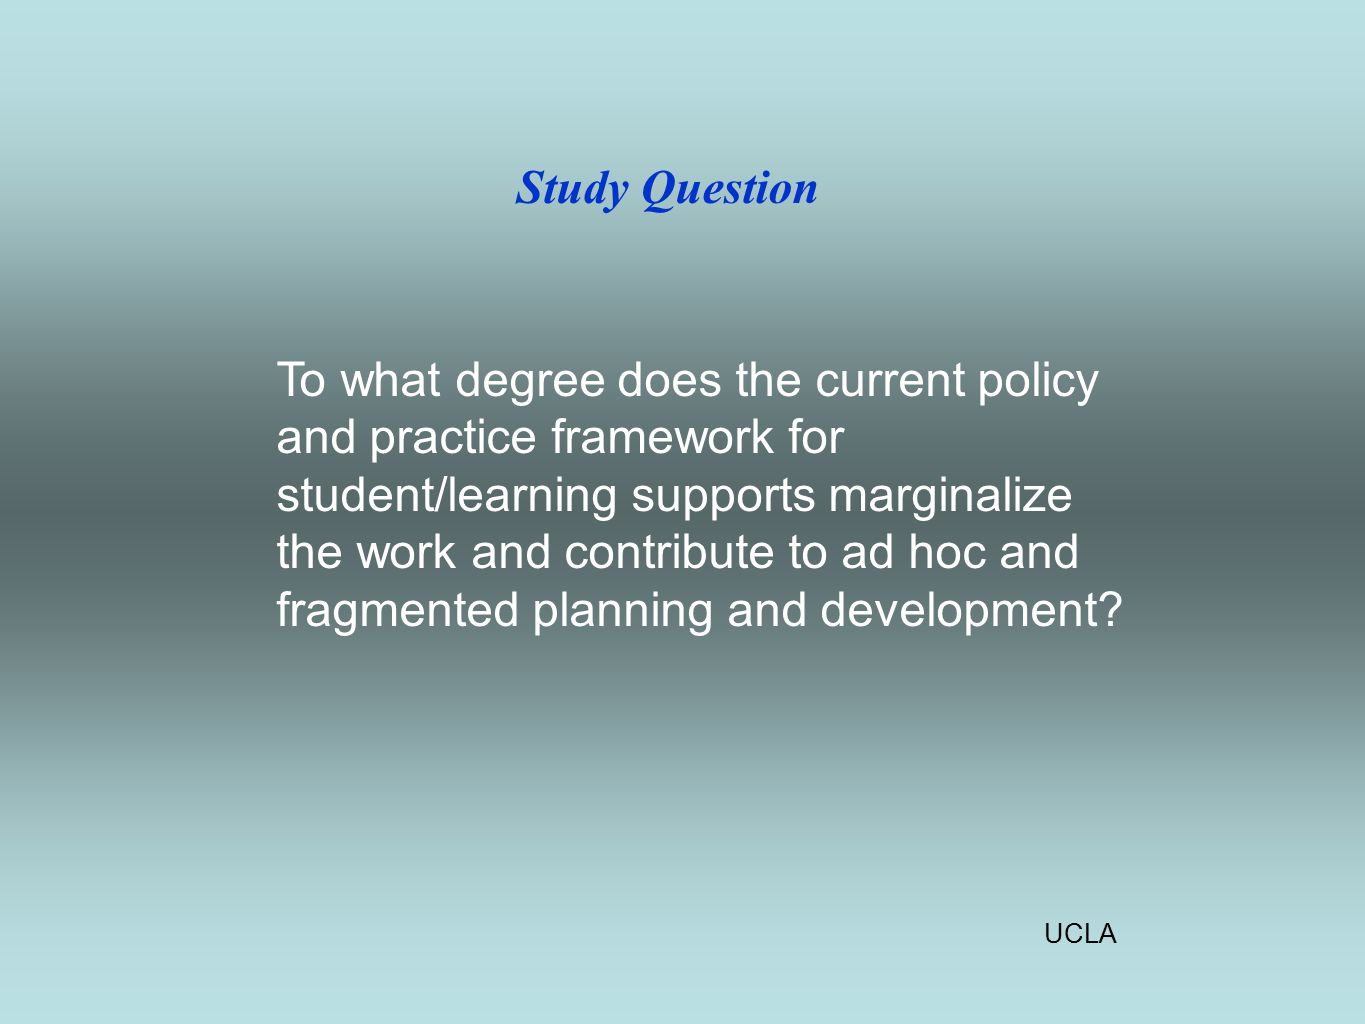 UCLA Study Question To what degree does the current policy and practice framework for student/learning supports marginalize the work and contribute to ad hoc and fragmented planning and development